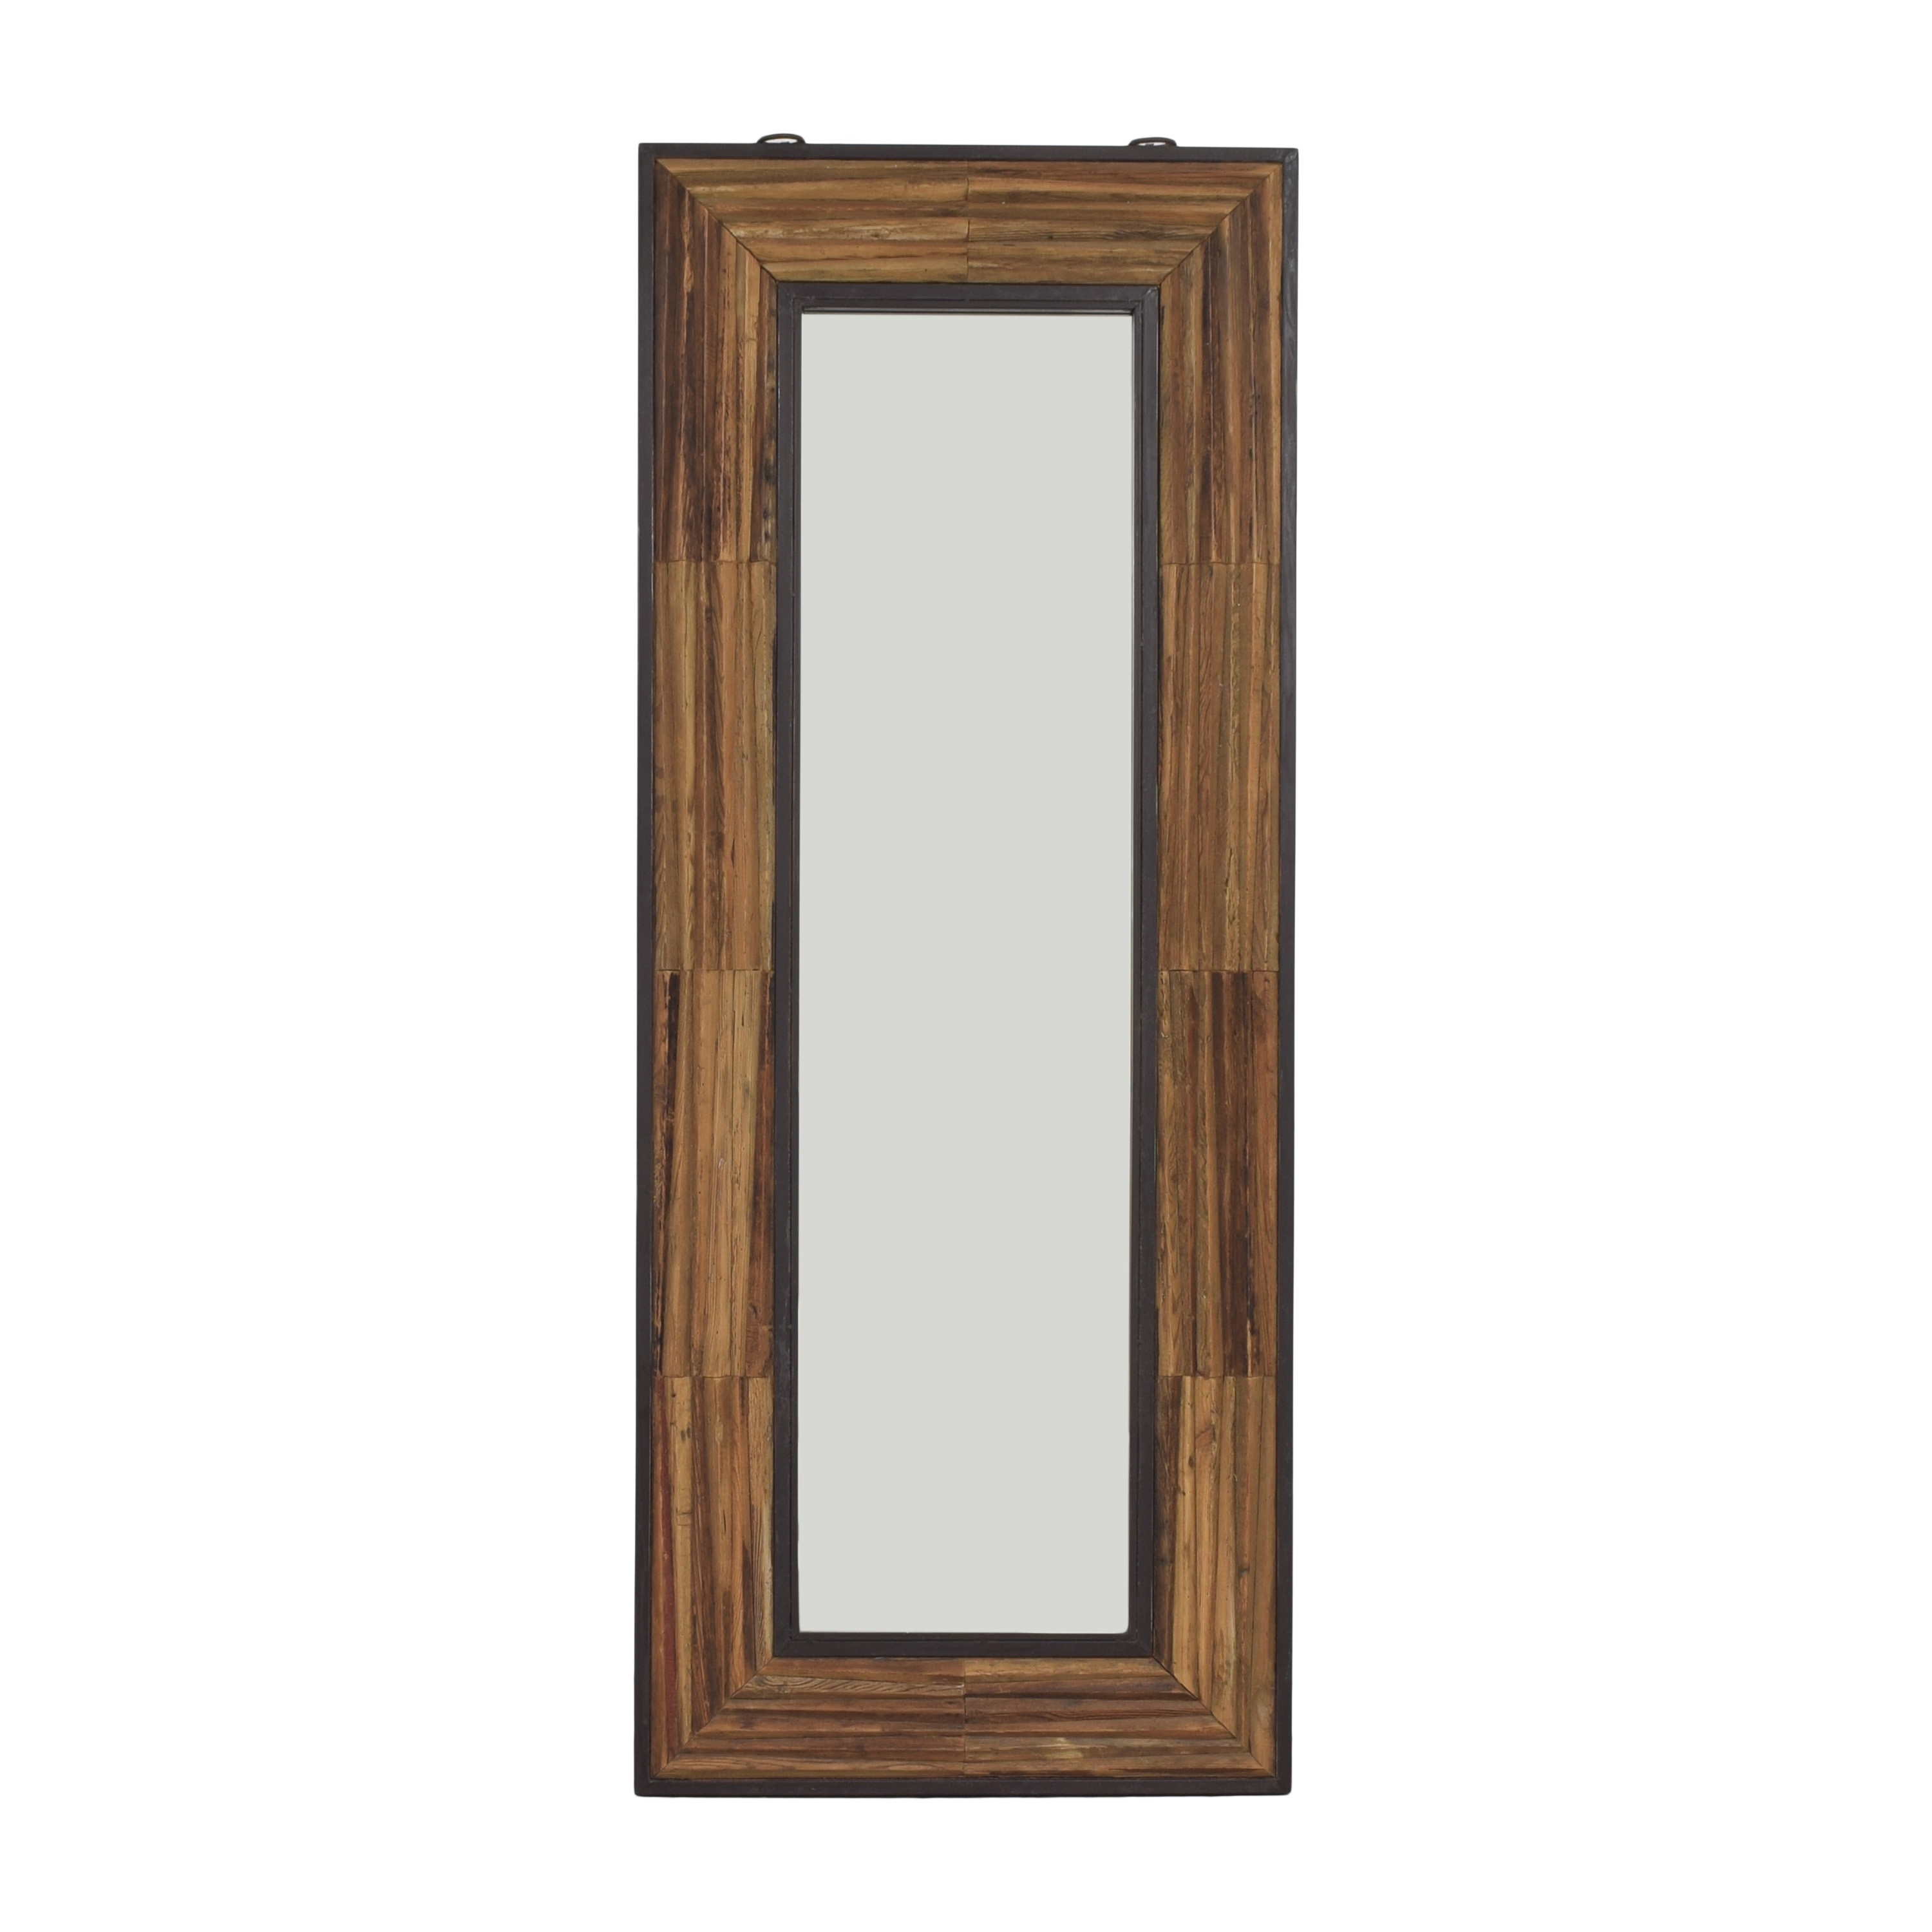 buy Restoration Hardware Restoration Hardware Framed Floor Mirror online